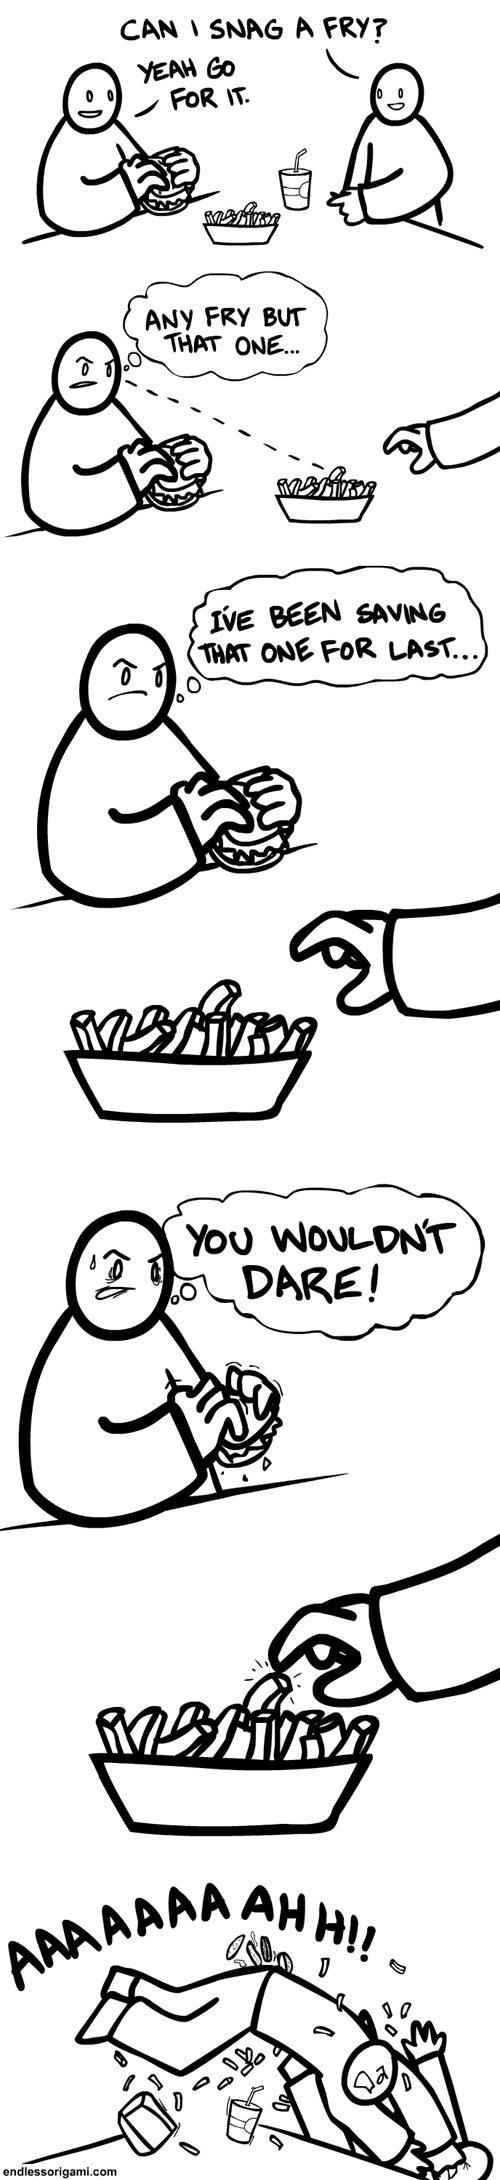 food fries sharing web comics - 8134101760